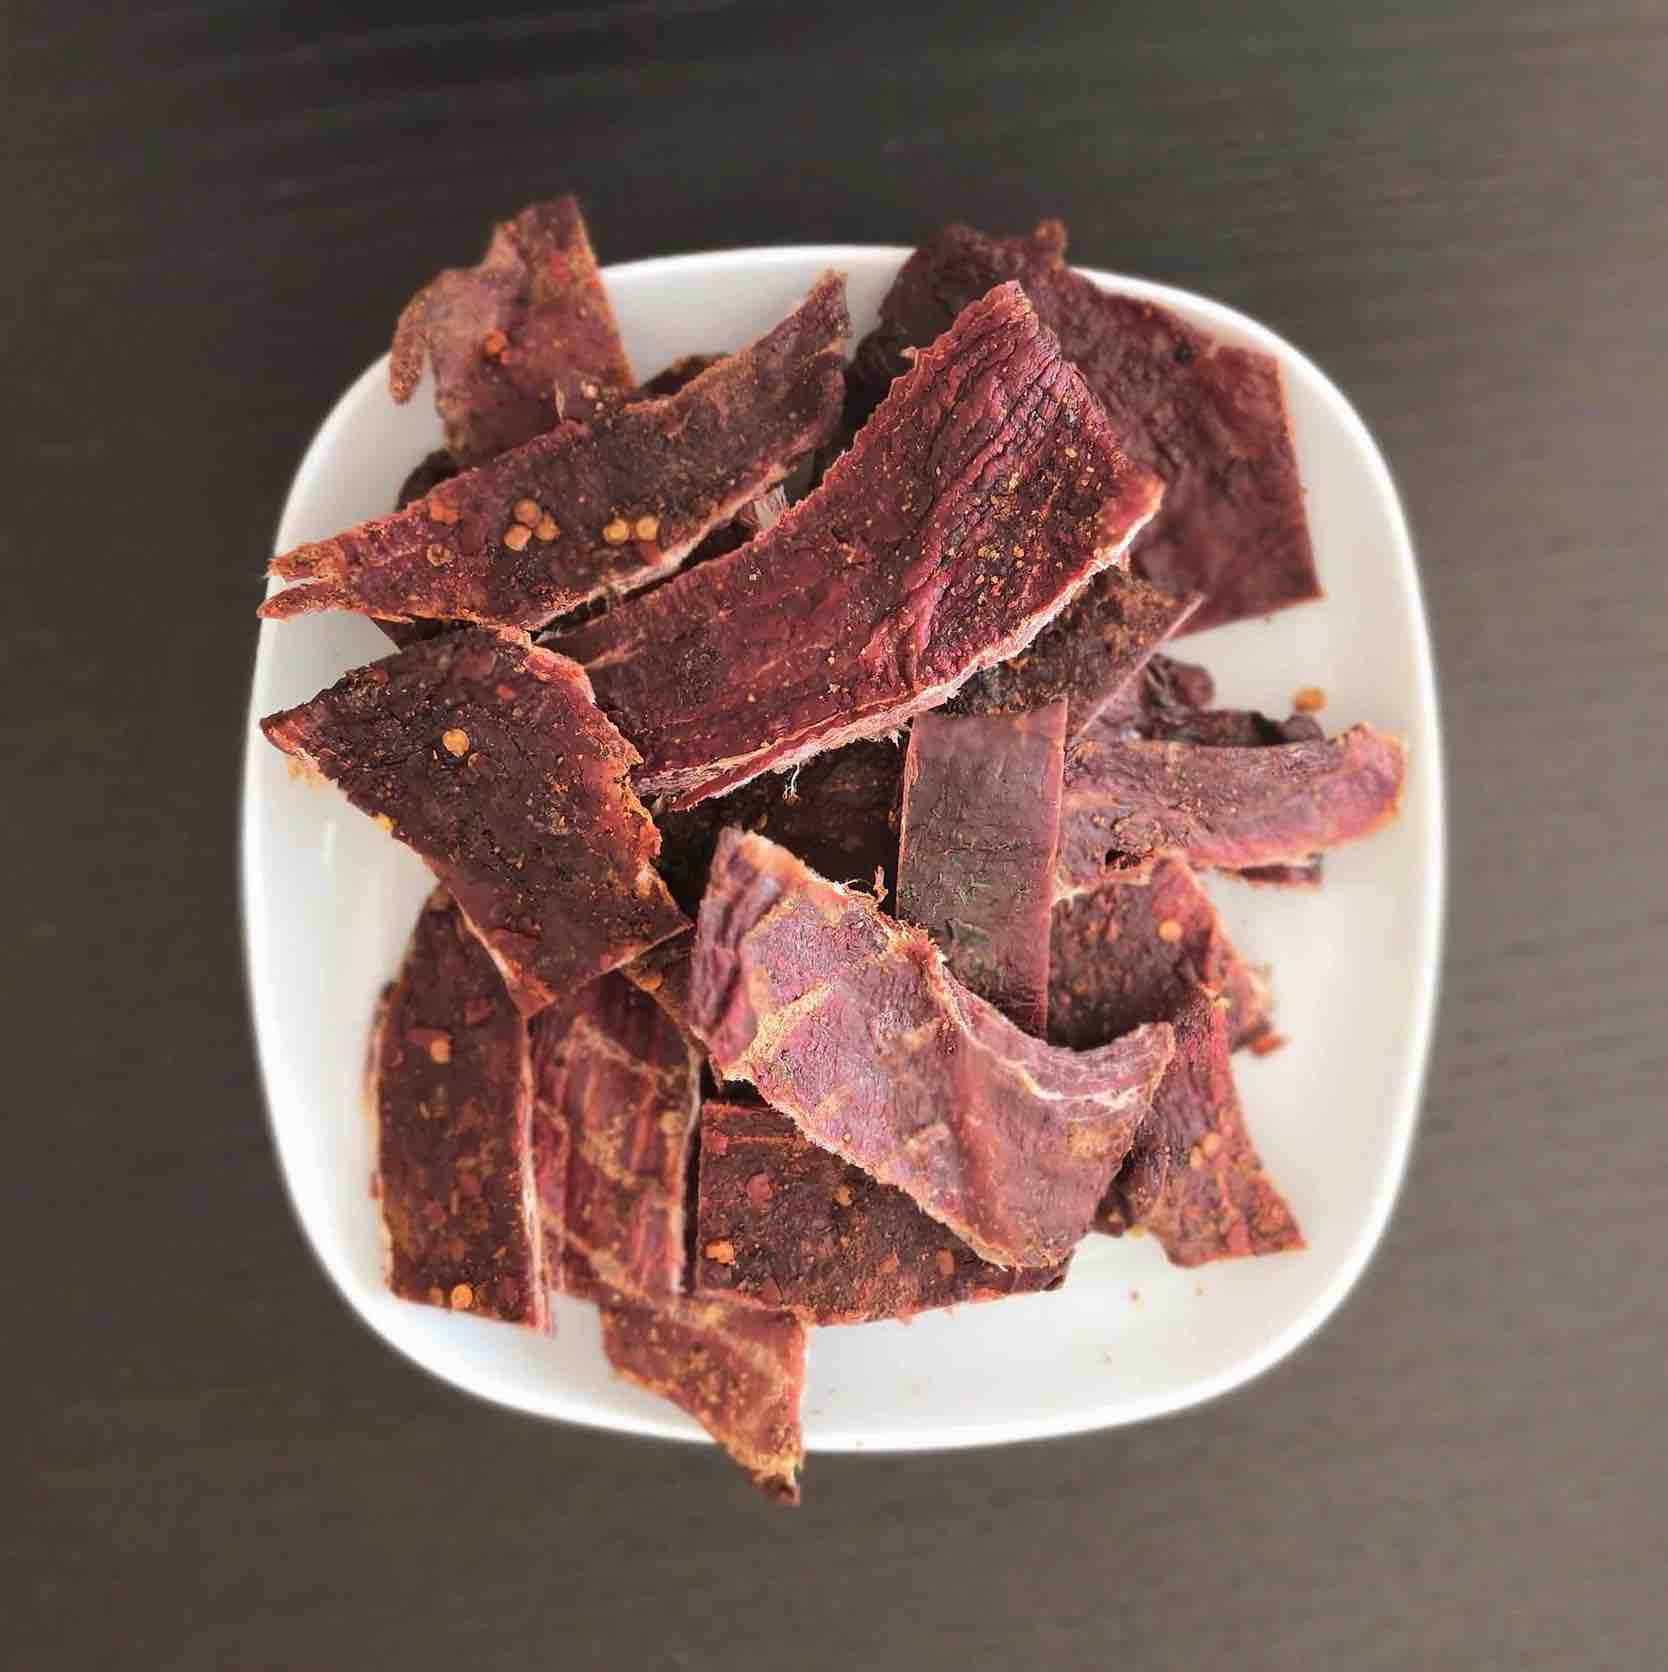 EastEnd Meats & Sausage Best Beef Jerky in Winnipeg; 22 Flavours & High in Protein. Standard shipping across MB. Sugar Free Selection Available